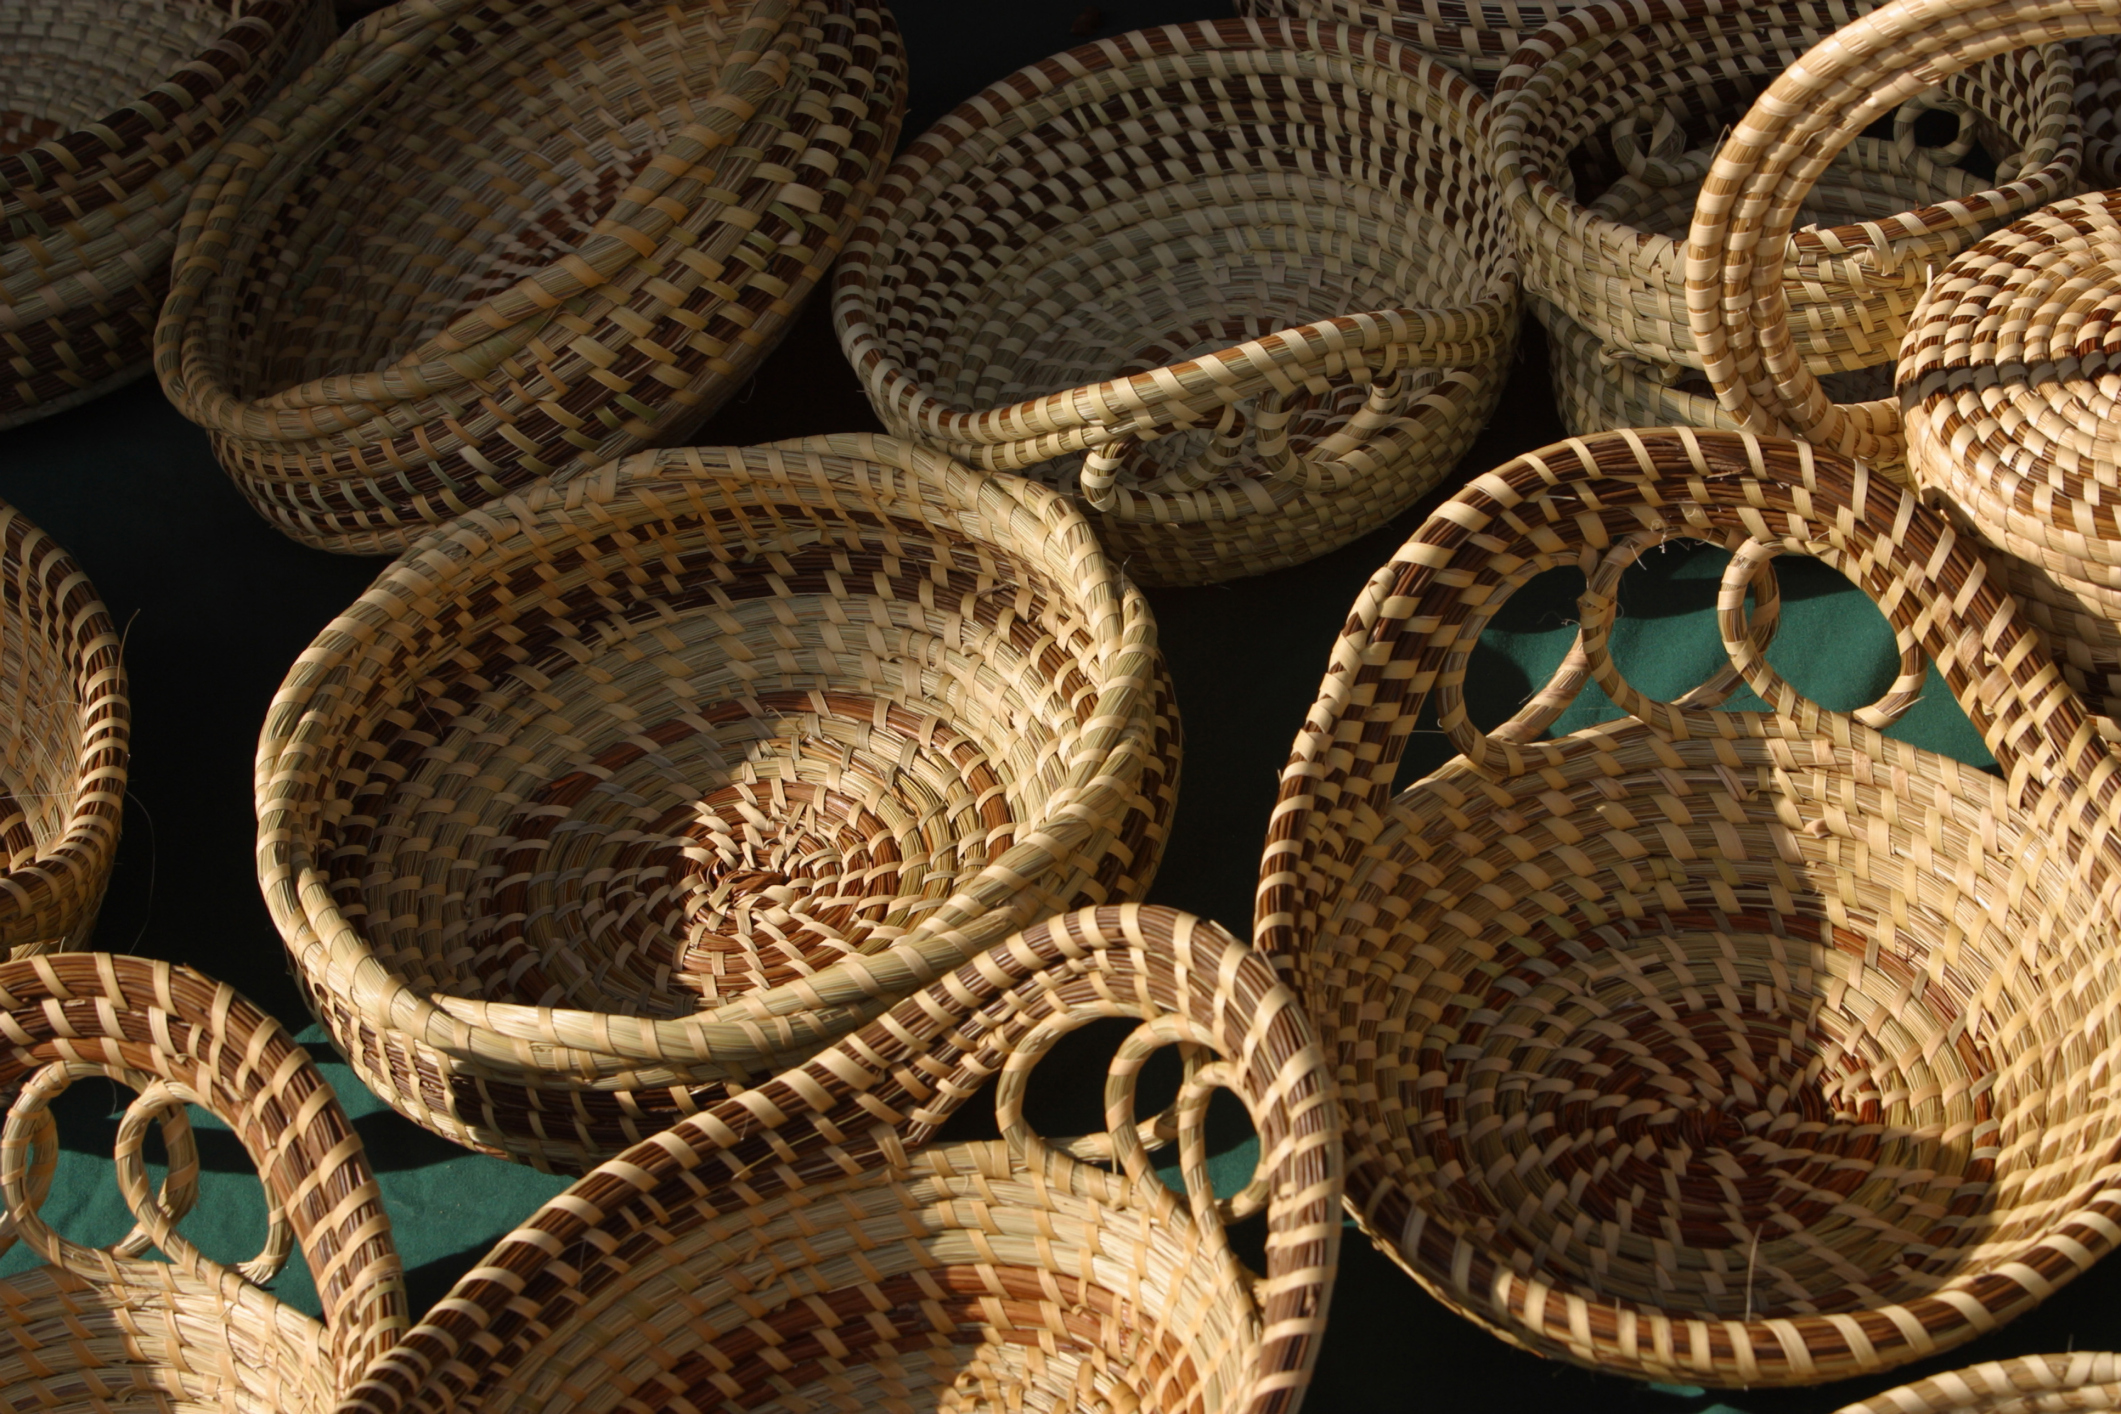 How to Decorate the Front Porch With Baskets | Home Guides ...